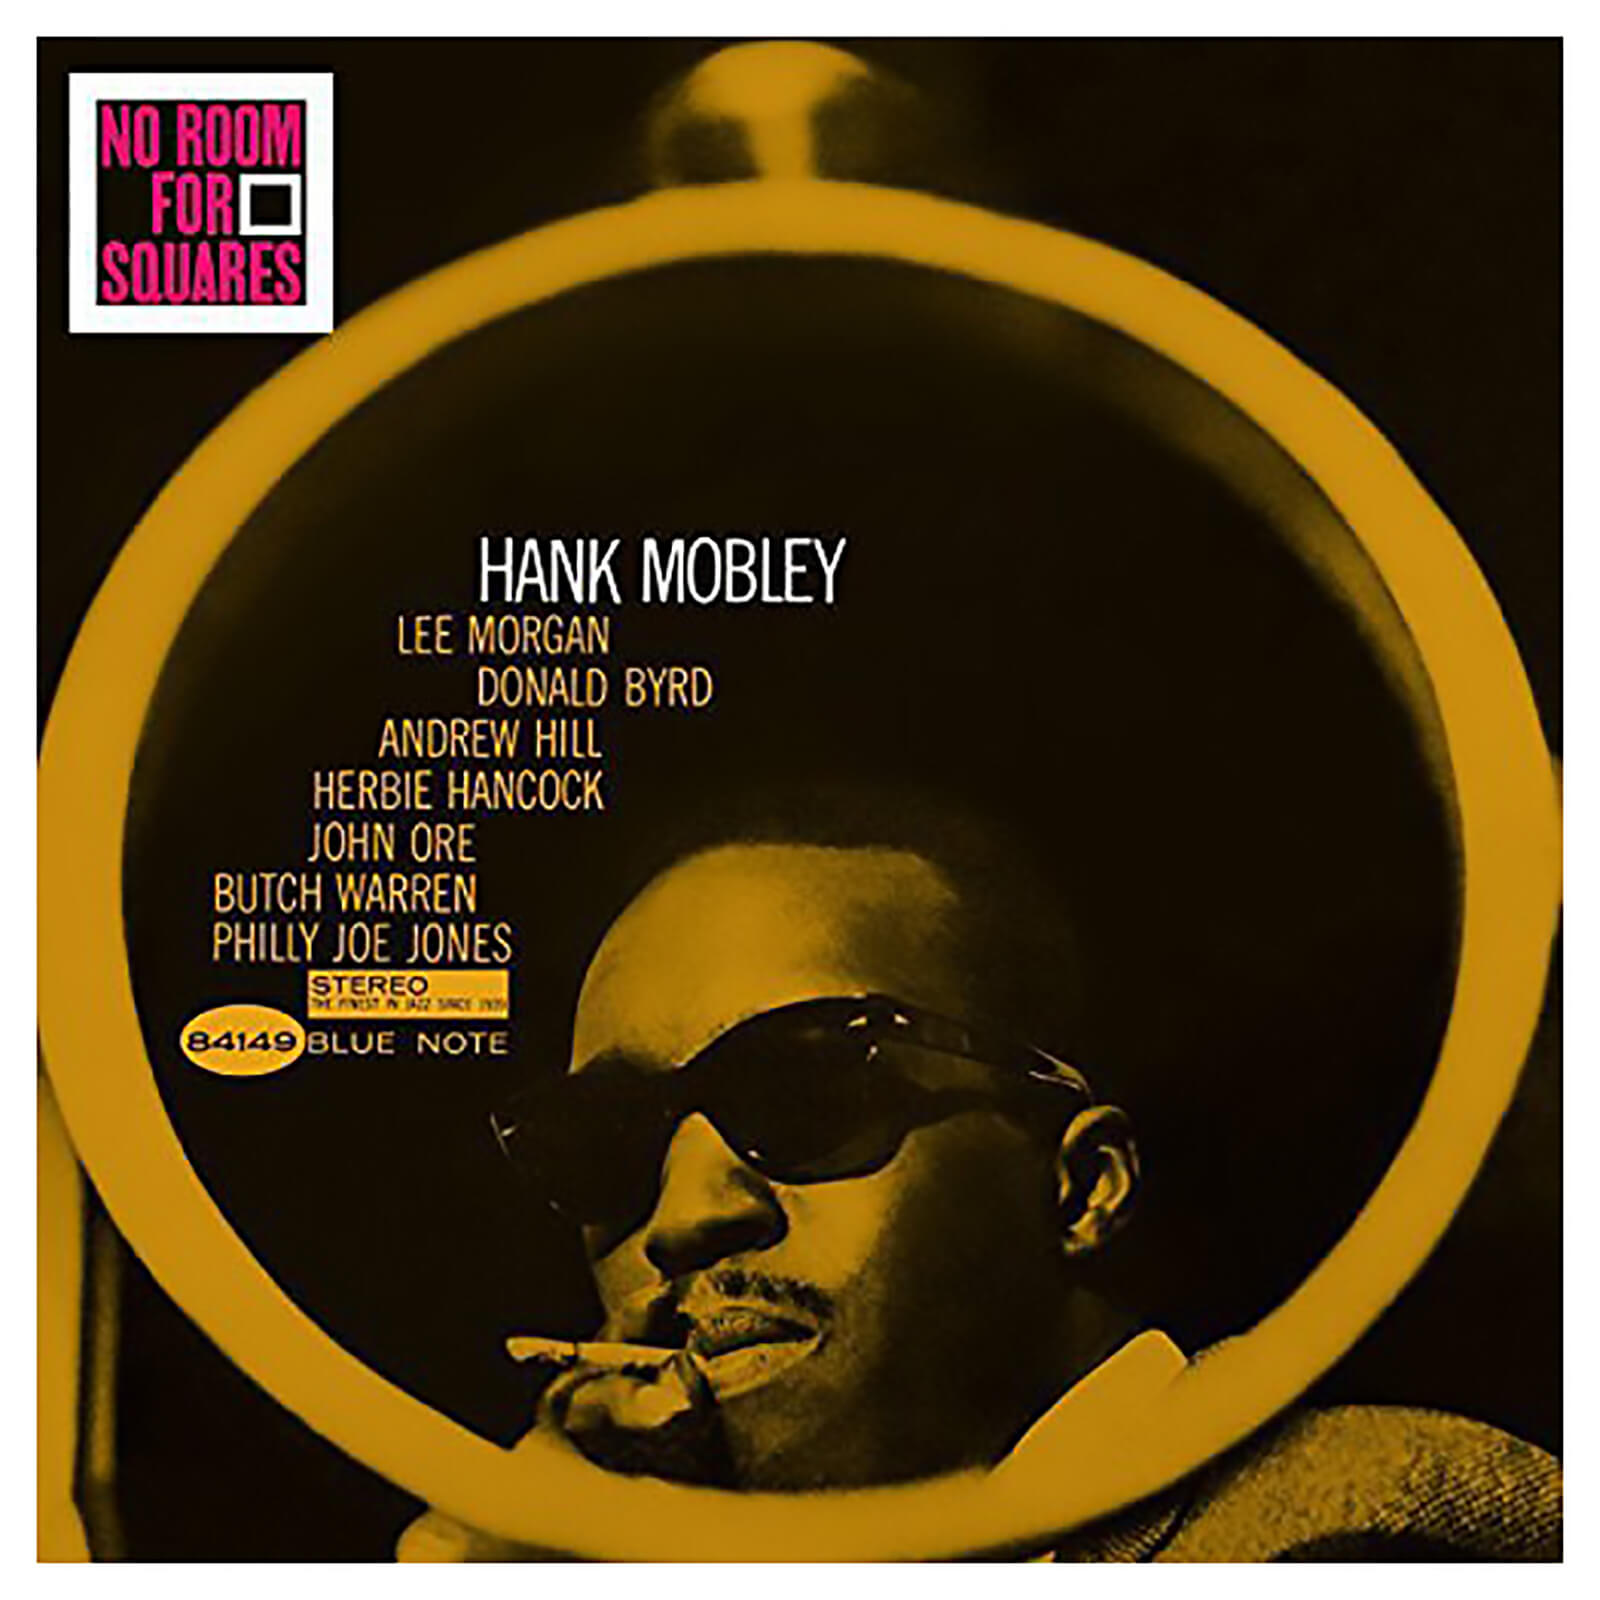 Hank Mobley - No Room For Squares - Vinyl